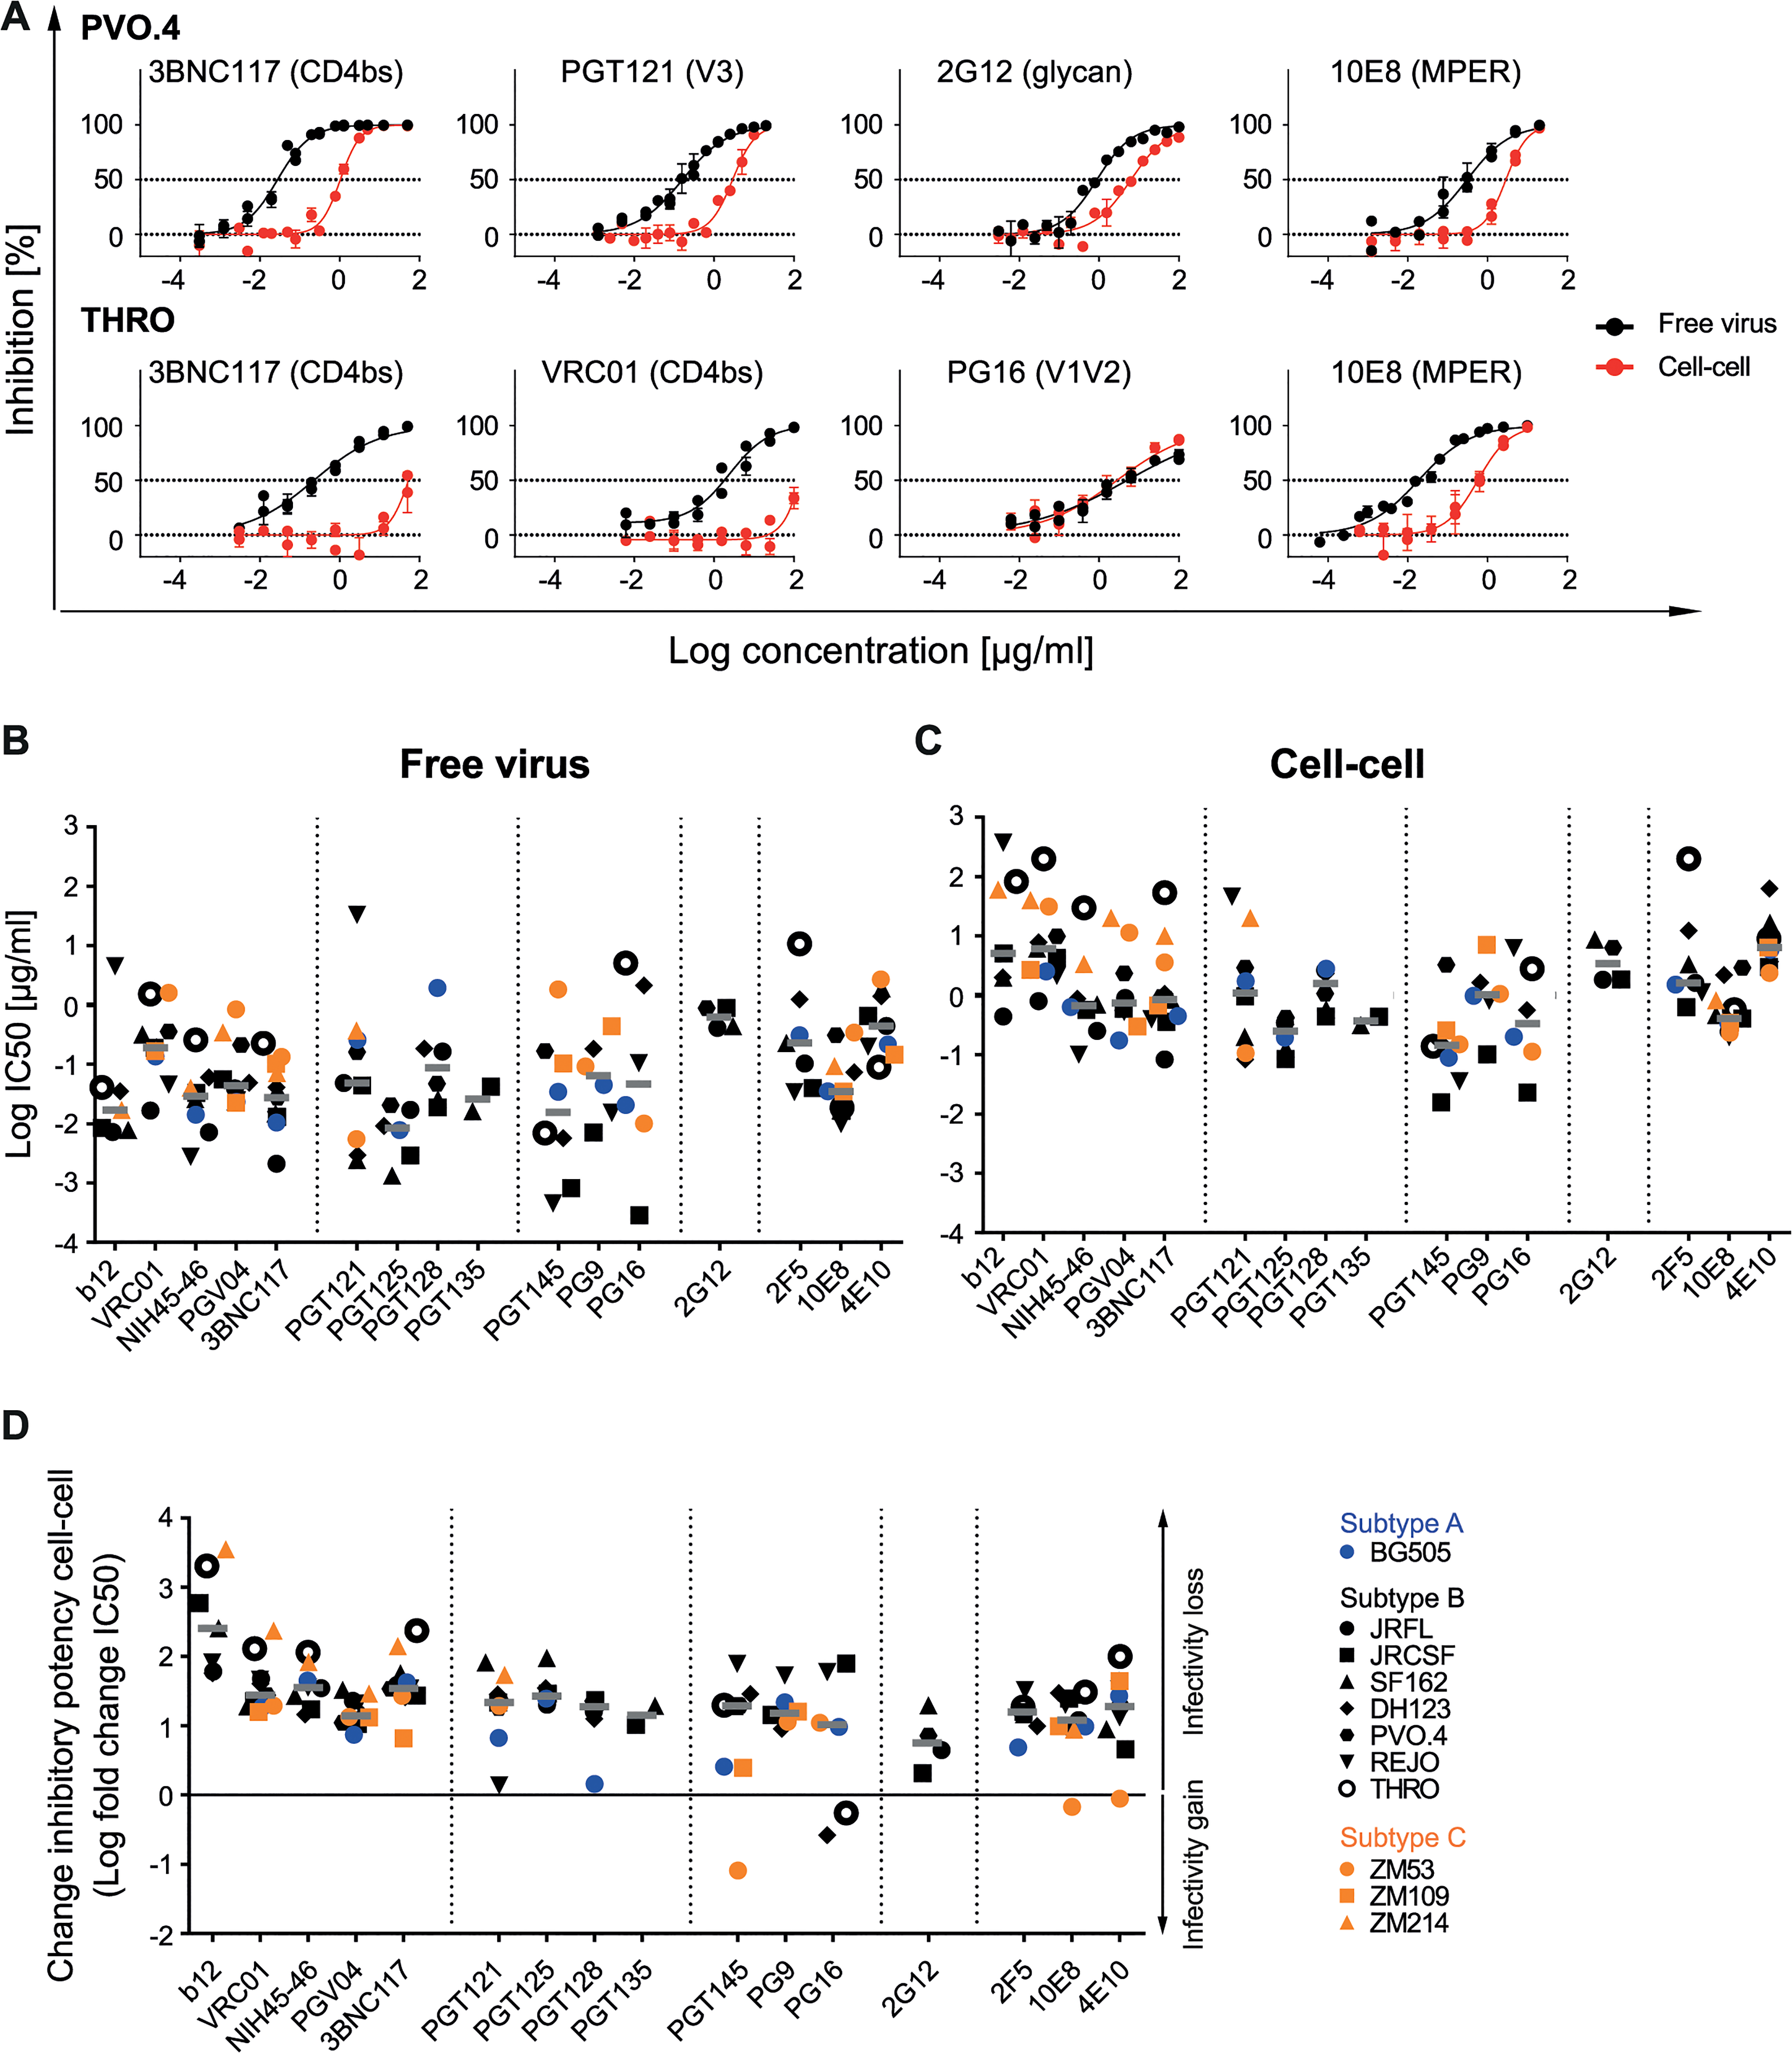 Decrease of bnAb activity during cell-cell transmission is variable and strain-dependent.